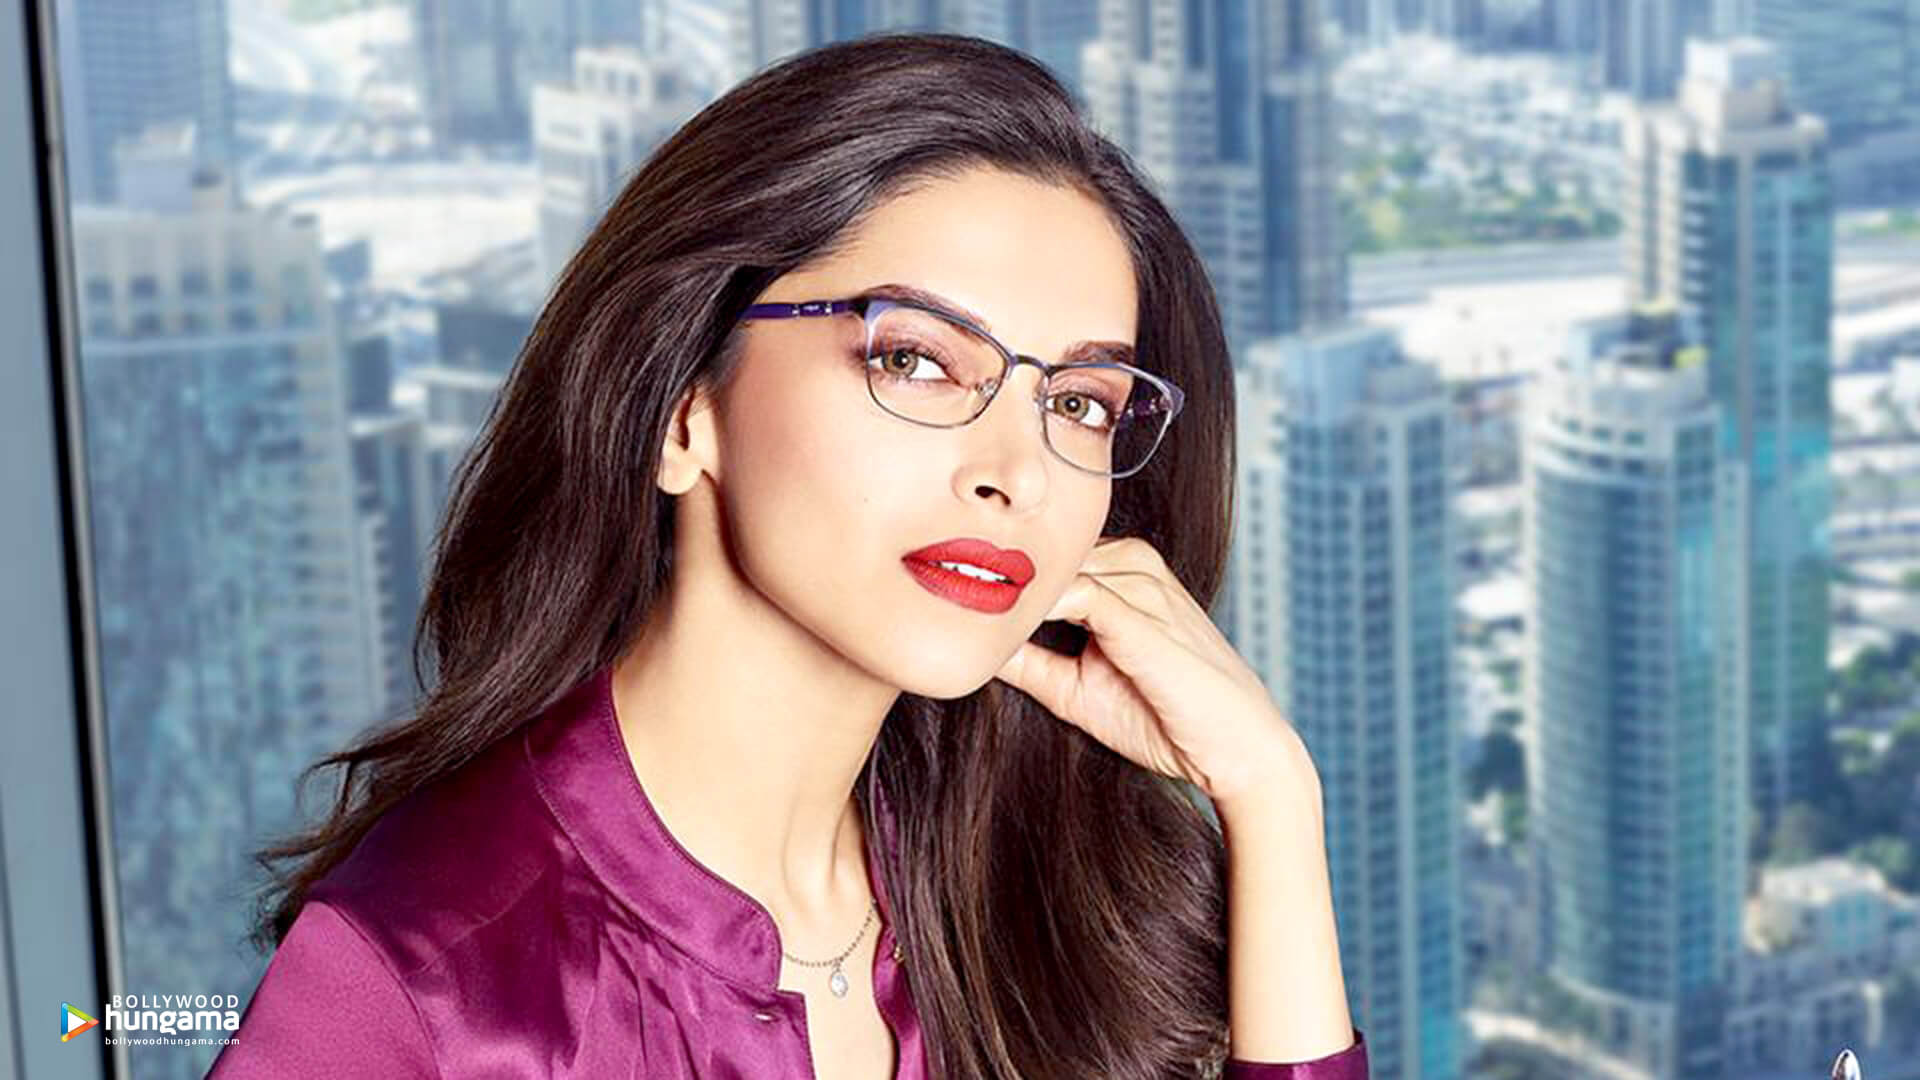 Deepika Padukone Wedding, Age, Height, Photos(images), Net Worth, Movies, Date Of Birth, Biography, Husband, Sister, Song, Family, Mother, Father, Hairstyle, Education, Awards, History (56)